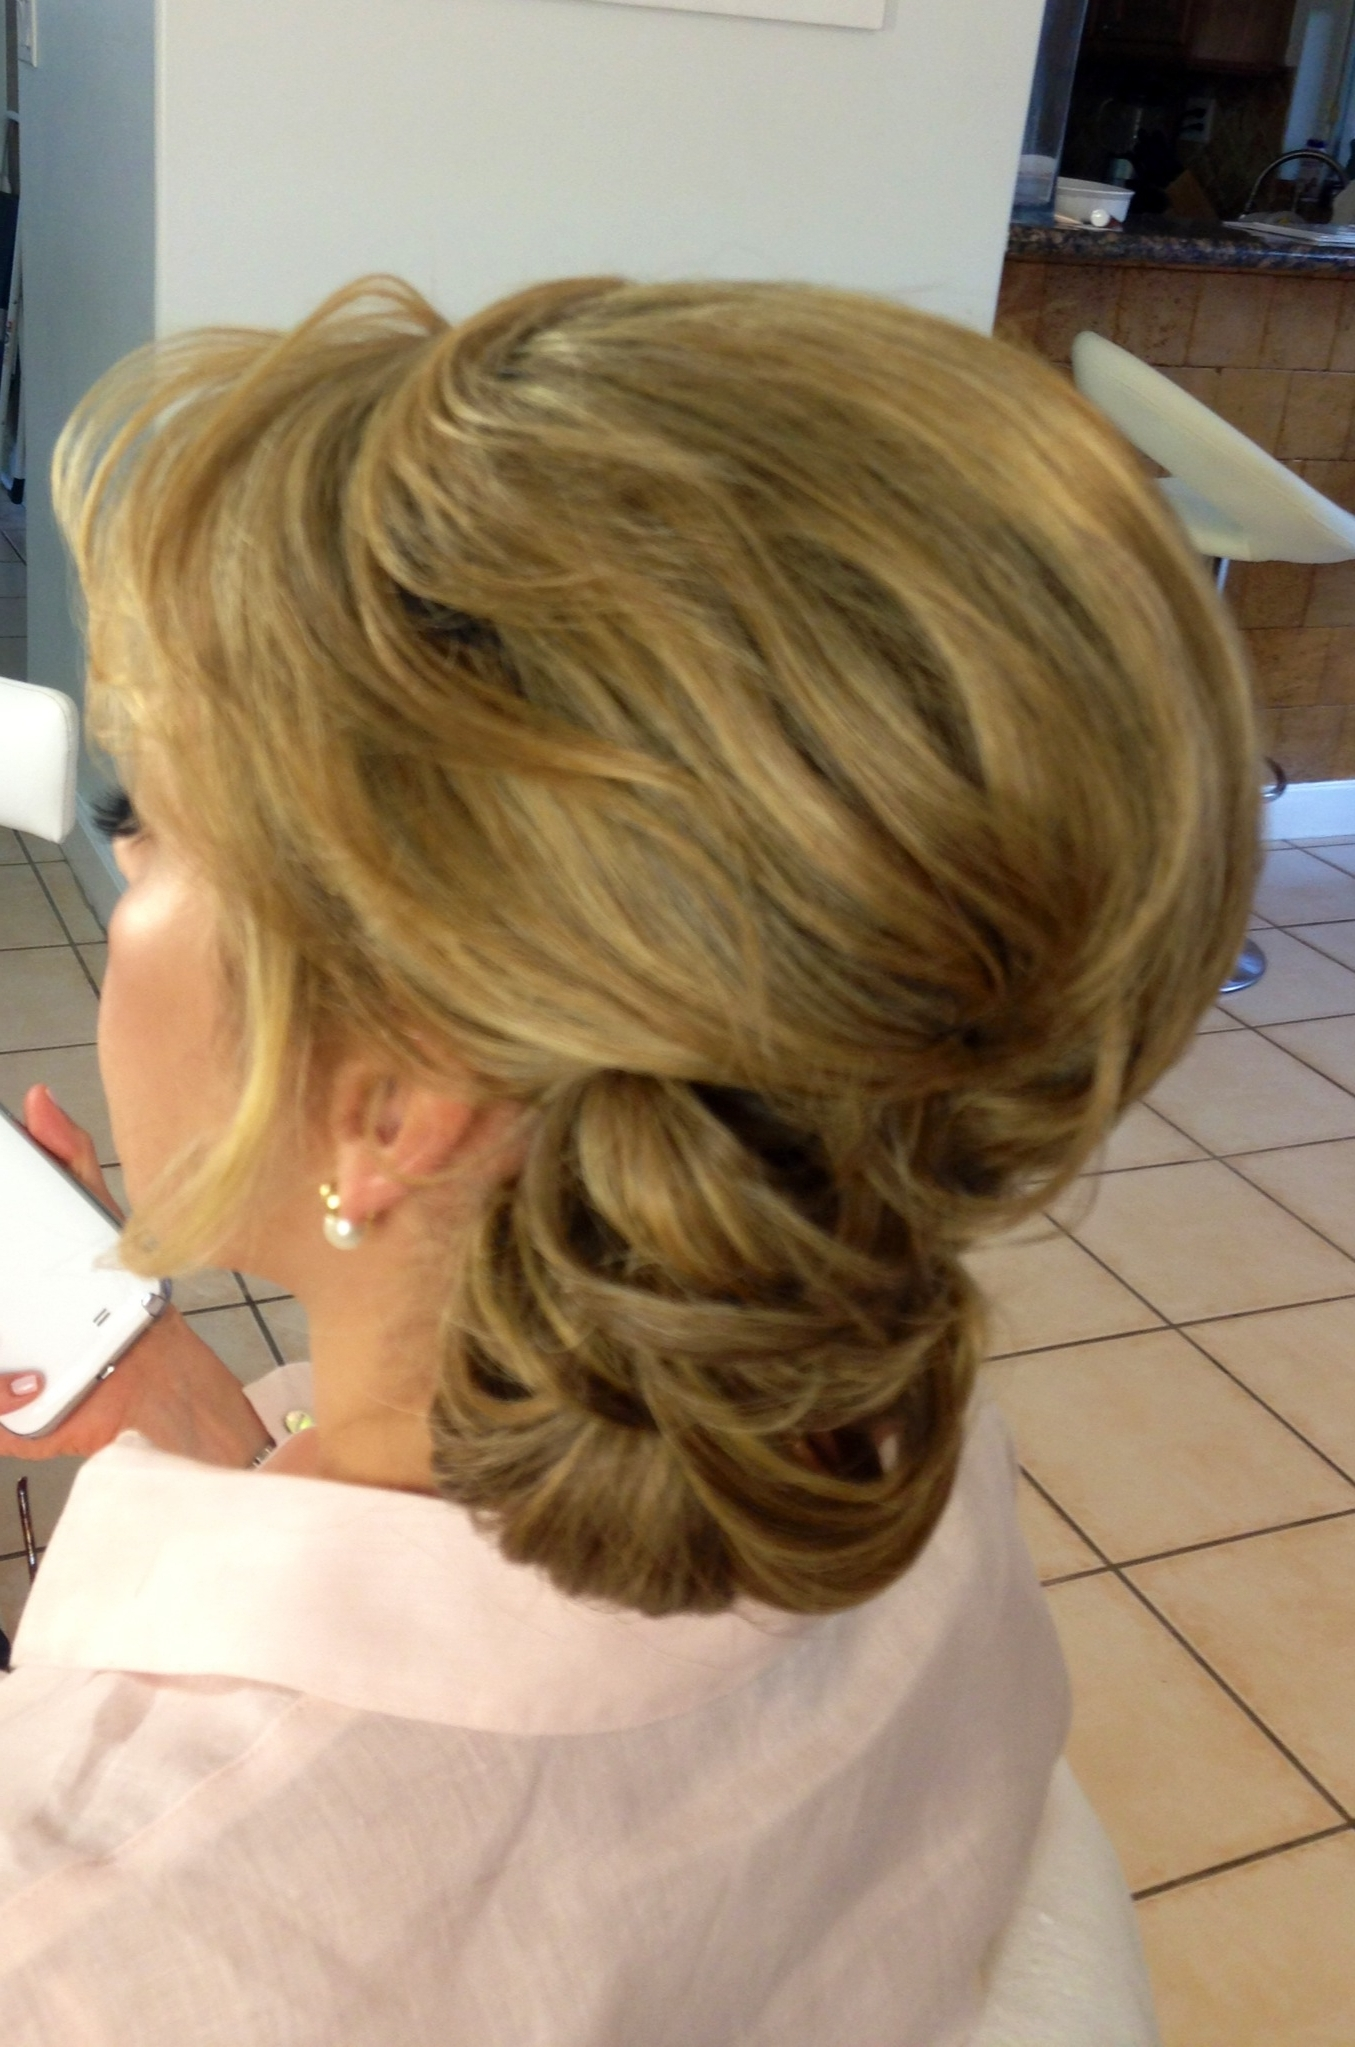 Endearing Half Up Hairstyles For Mother Of The Bride For Pictures Pertaining To Updo Hairstyles For Mother Of The Bride (View 8 of 15)